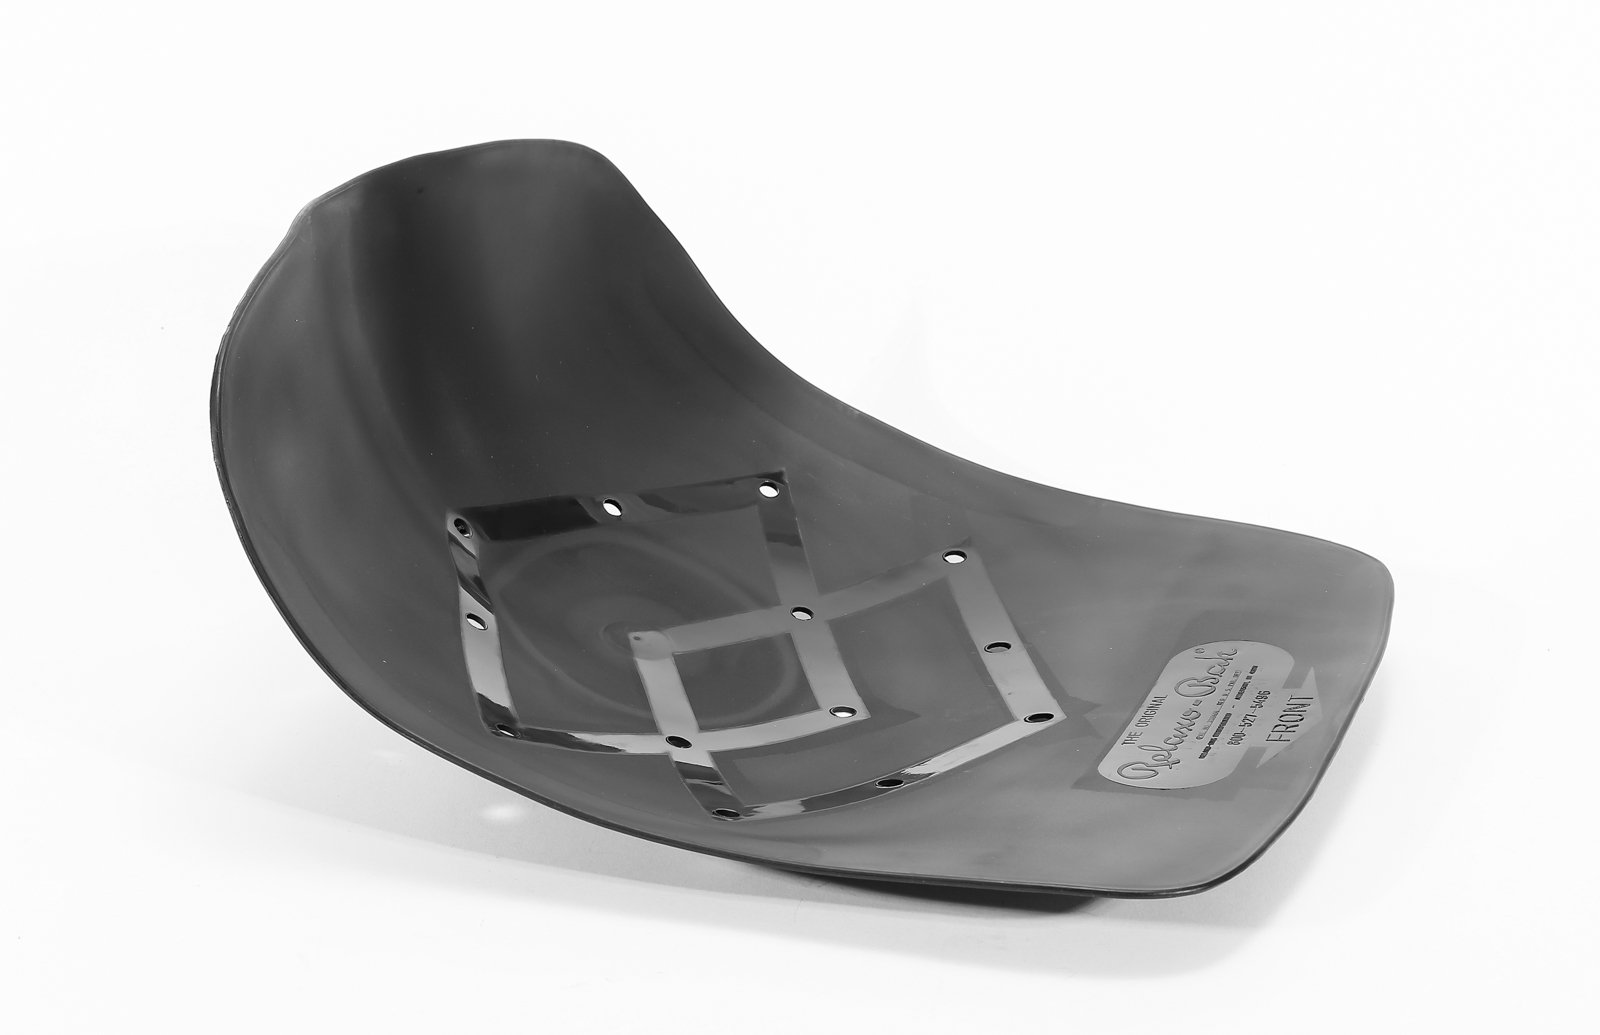 "The Original Orthopedic Firm-Yet-Flexible Comfort Seat by RelaxoBak, Molds to Body, Ideal for Tailbone/Coccyx & Lower Spine, Posture/Alignment Support, 16.7"" x 13"" x 4.5"", Holds up to 300lbs"